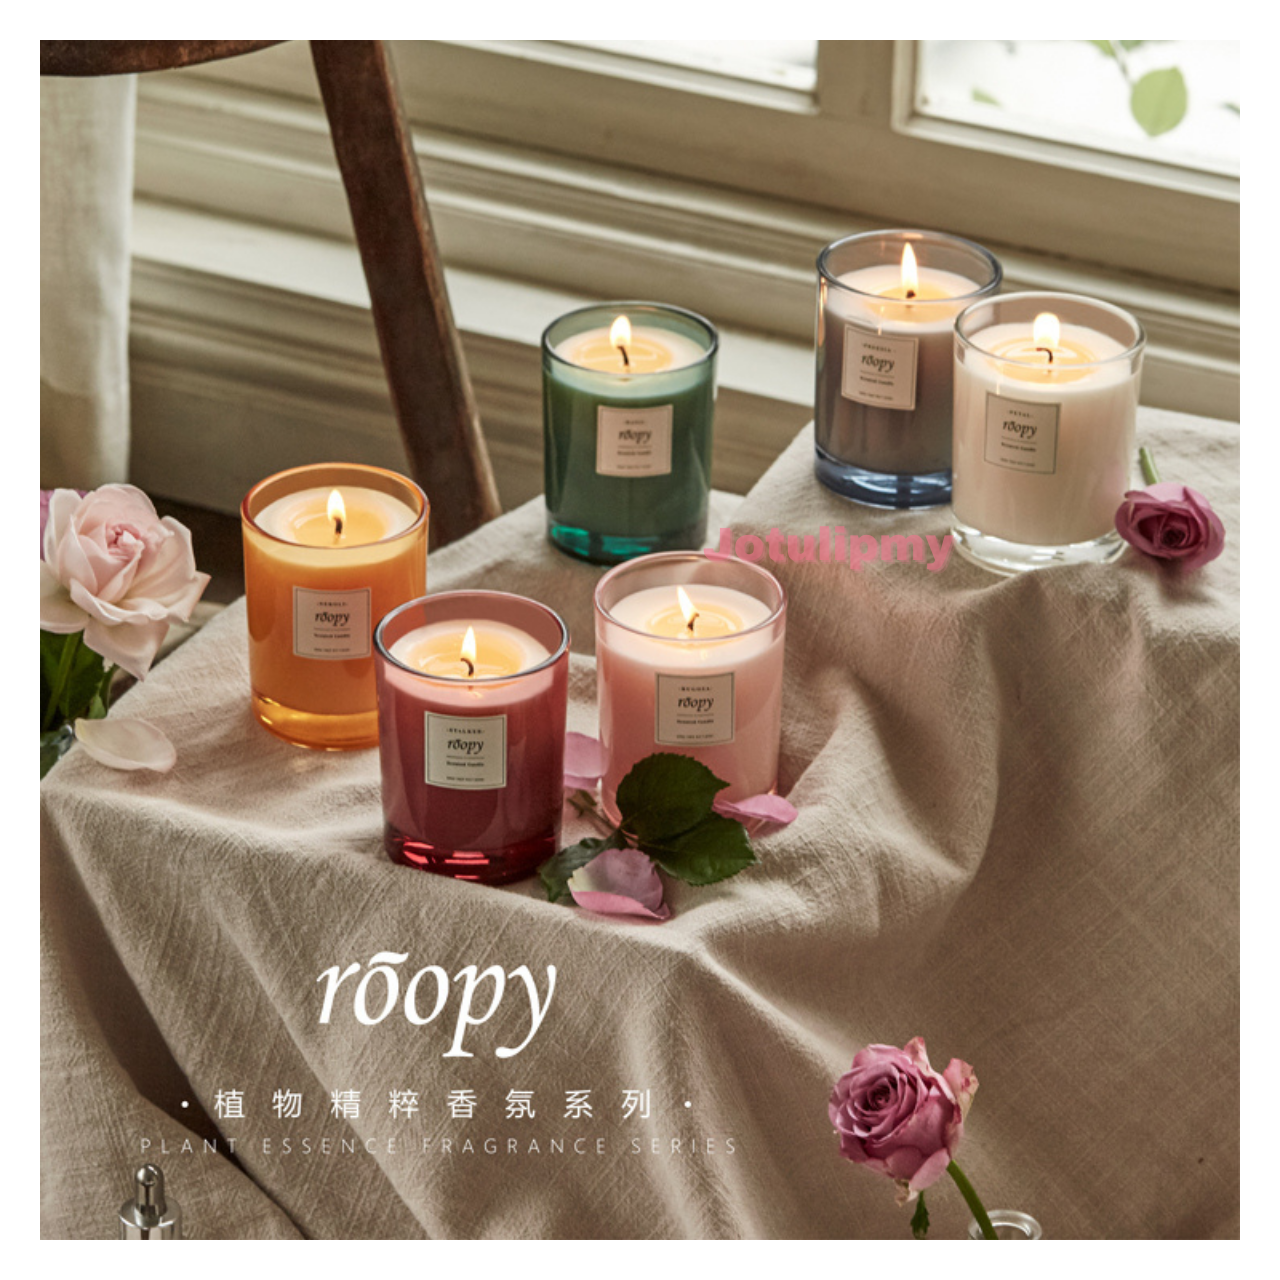 Roopy Fragrant Plant Scented Candle 植物香薰蜡烛220g  香氛植物精粹精油大豆蜡